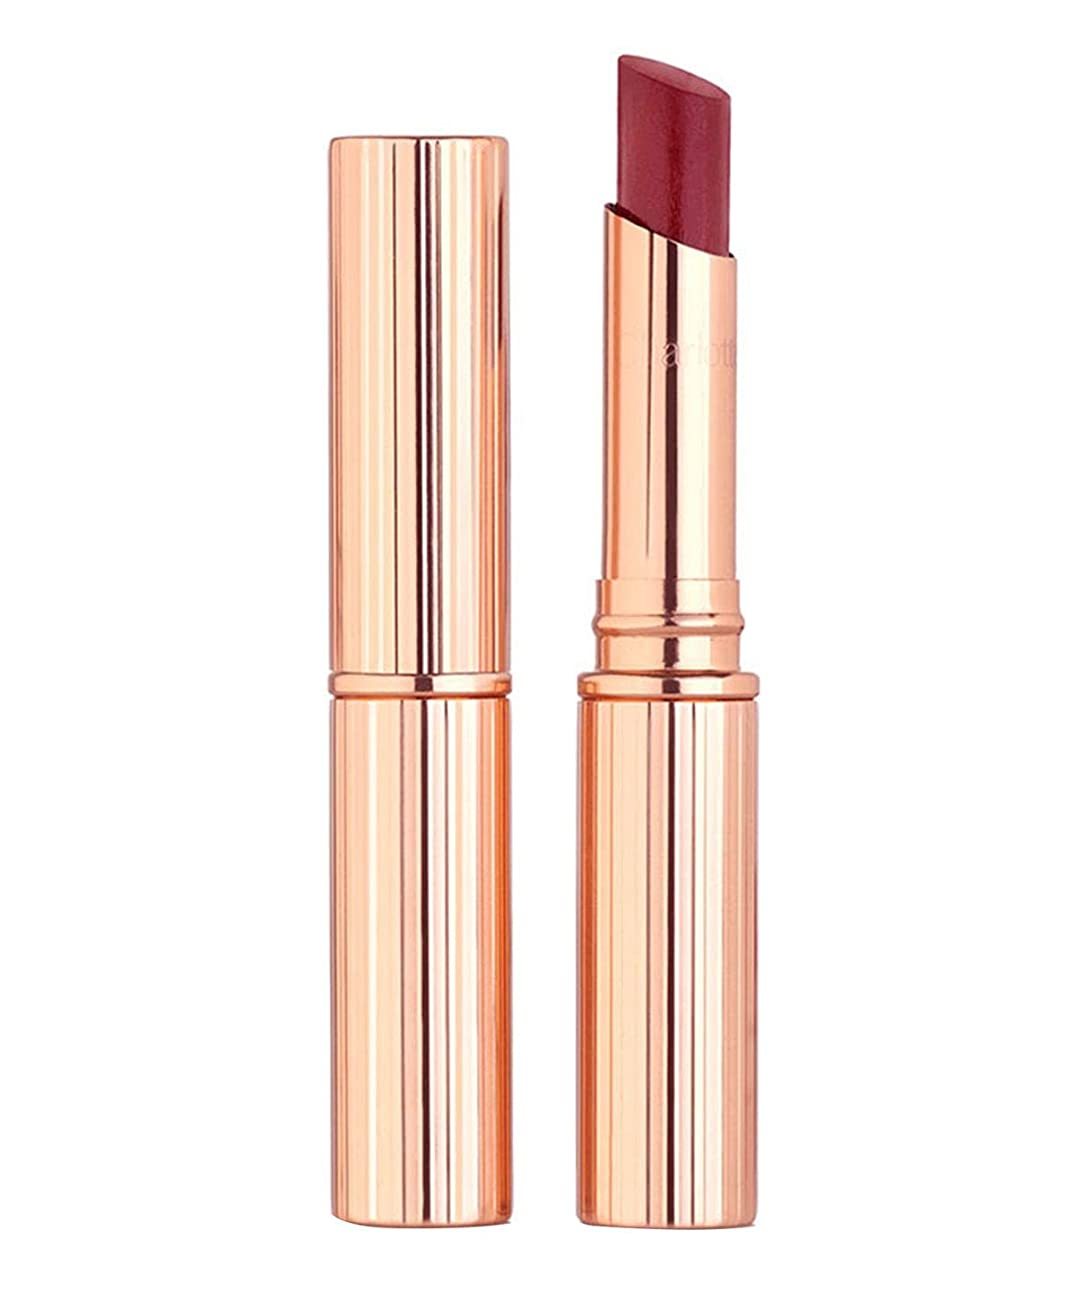 郡無意識お風呂CHARLOTTE TILBURY Superstar Lips(1.8g) Pillow Talk